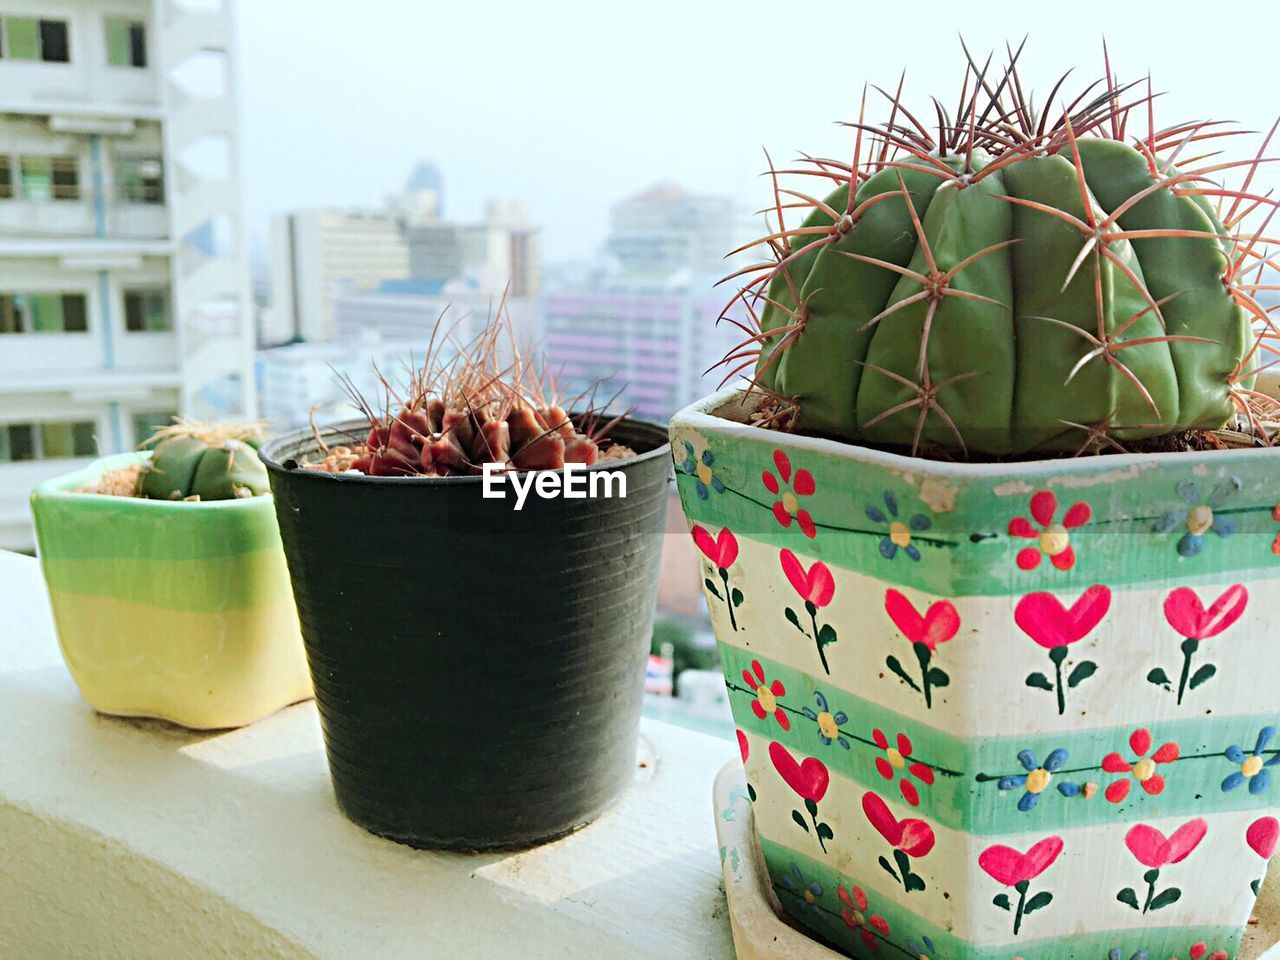 potted plant, focus on foreground, day, close-up, no people, green color, succulent plant, cactus, plant, nature, container, growth, freshness, outdoors, spiked, thorn, window, plant part, food and drink, food, flower pot, houseplant